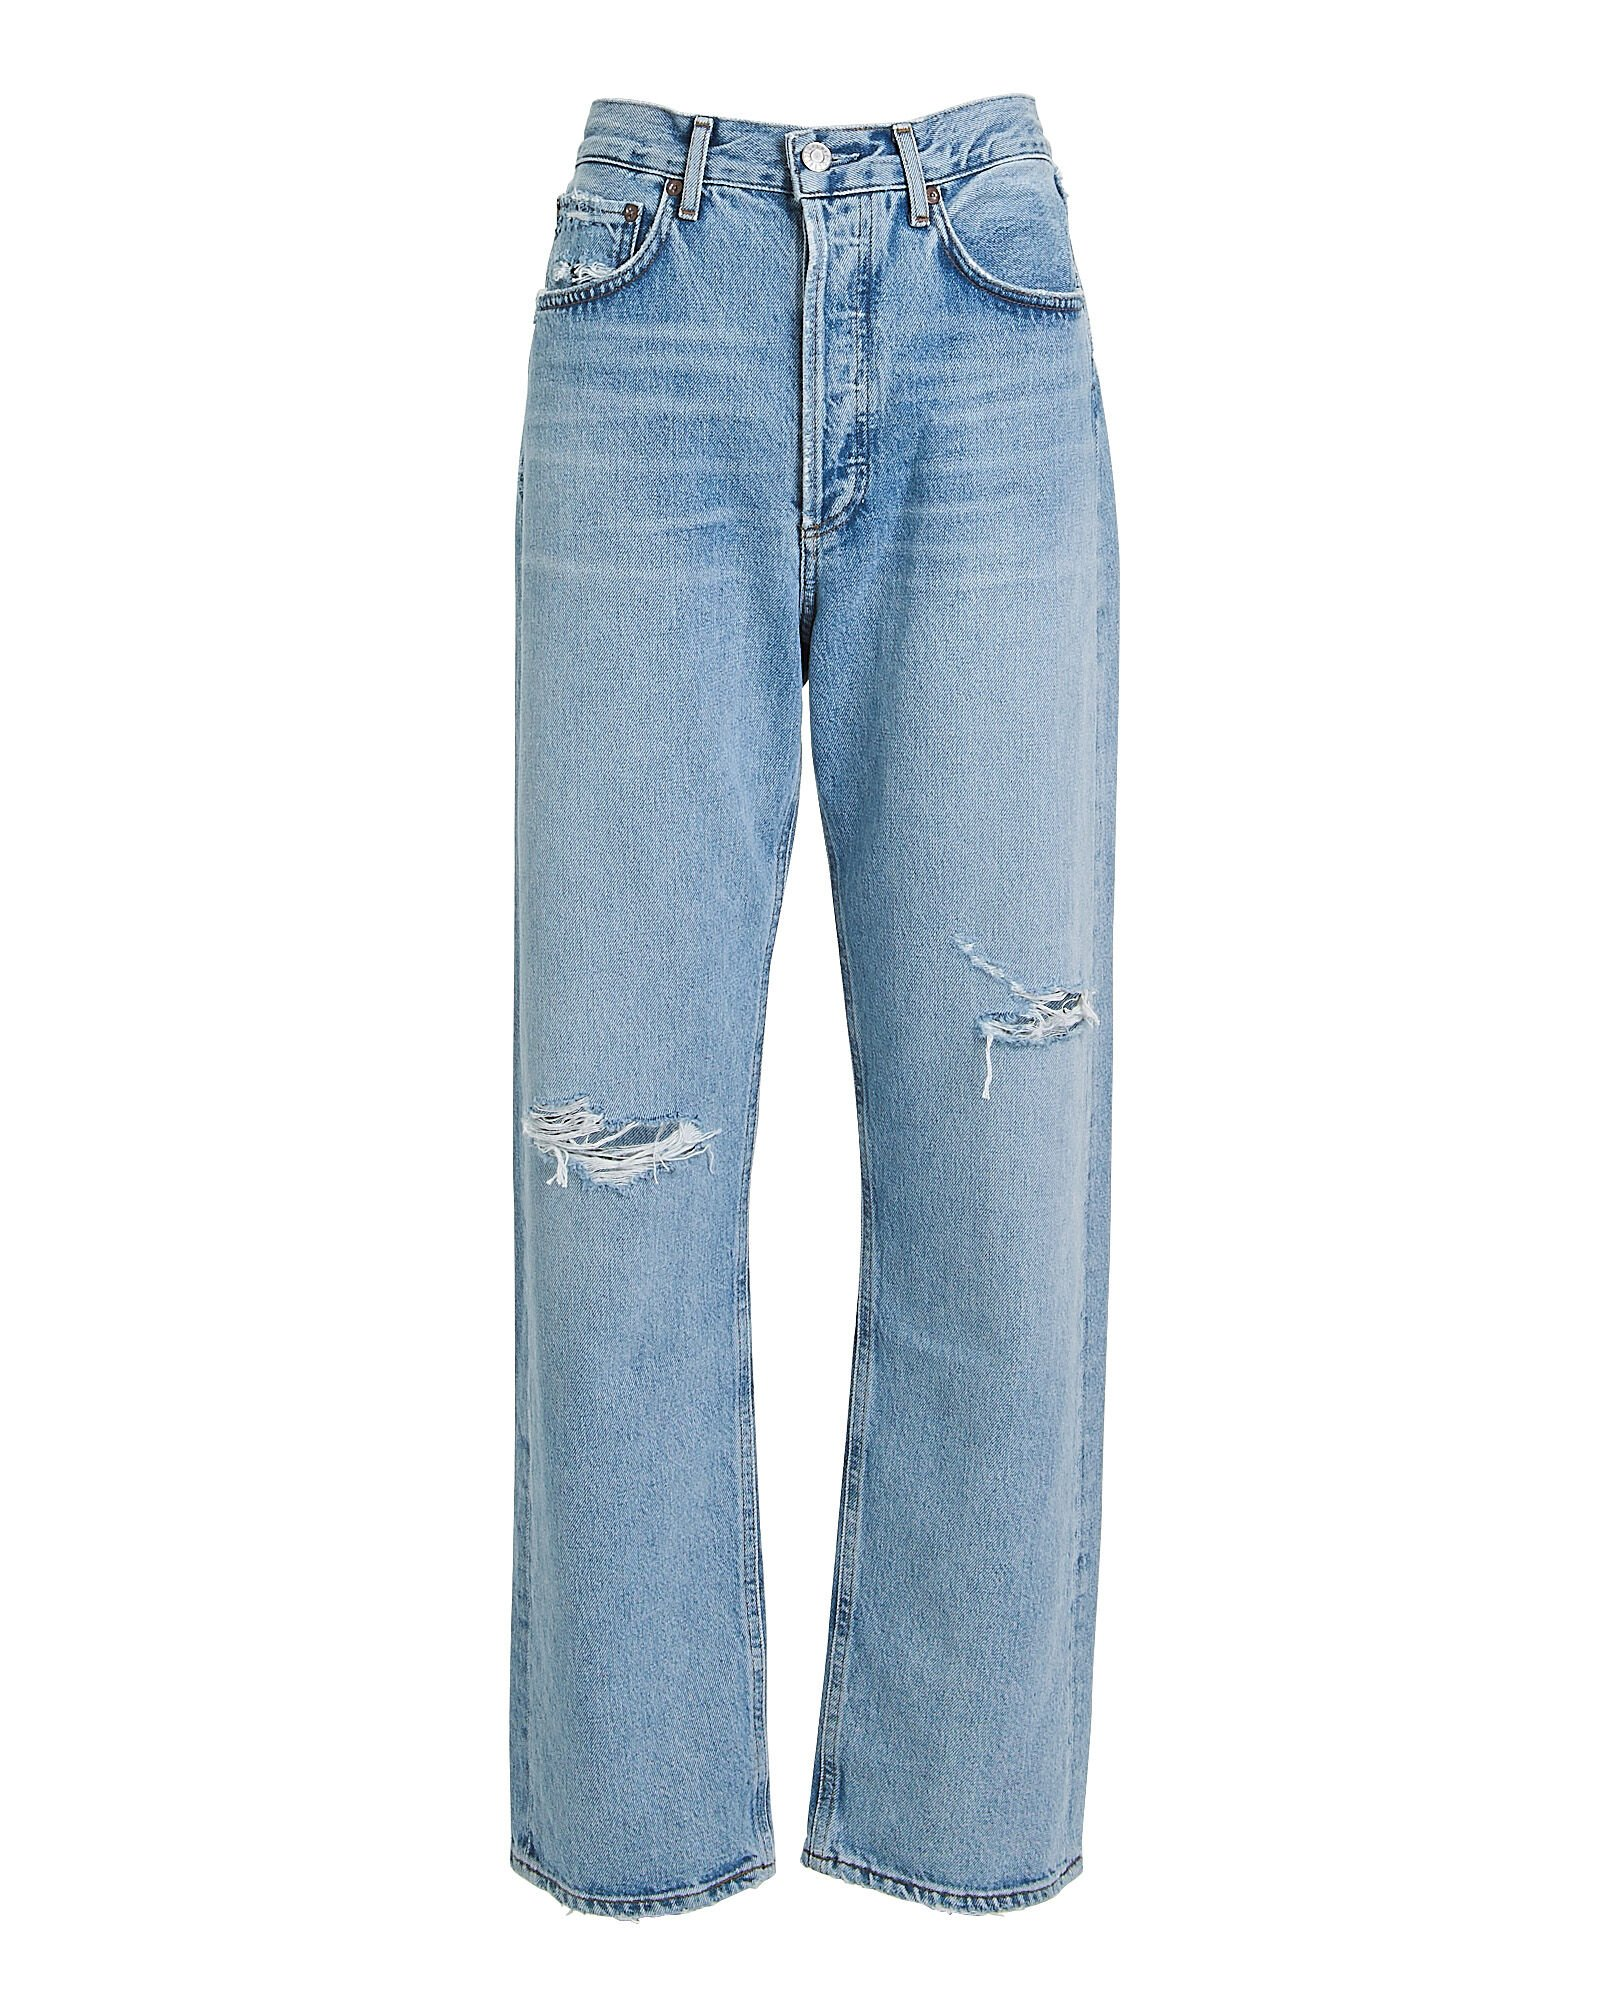 90's Ultra High-Rise Jeans, MEIUM WASH DENIM, hi-res